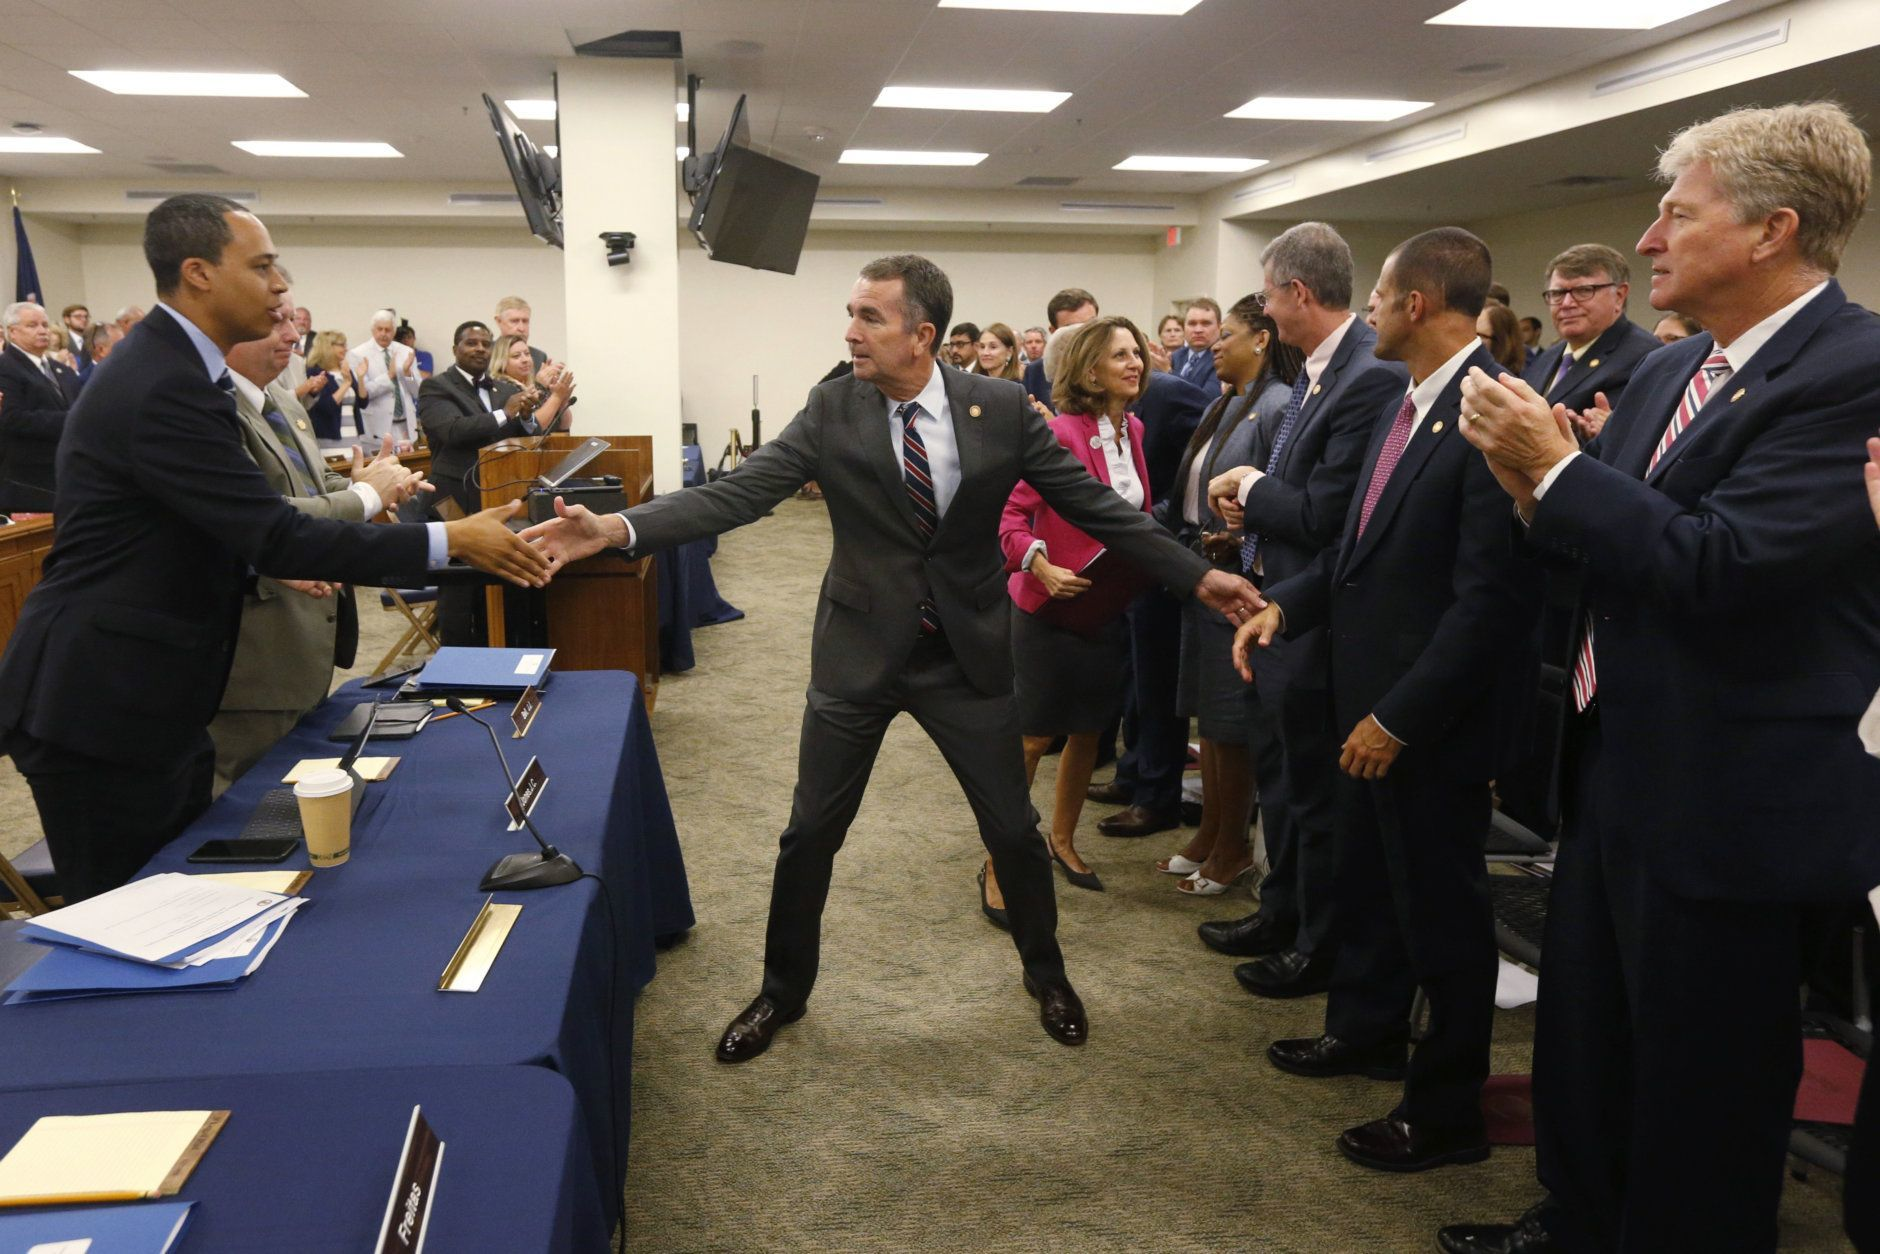 Virginia Gov. Ralph Northam greets legislators and staff after he delivered his budget update before a joint meeting of the House and Senate money committees at the Capitol in Richmond, Va., Tuesday, Aug. 20, 2019. (AP Photo/Steve Helber)